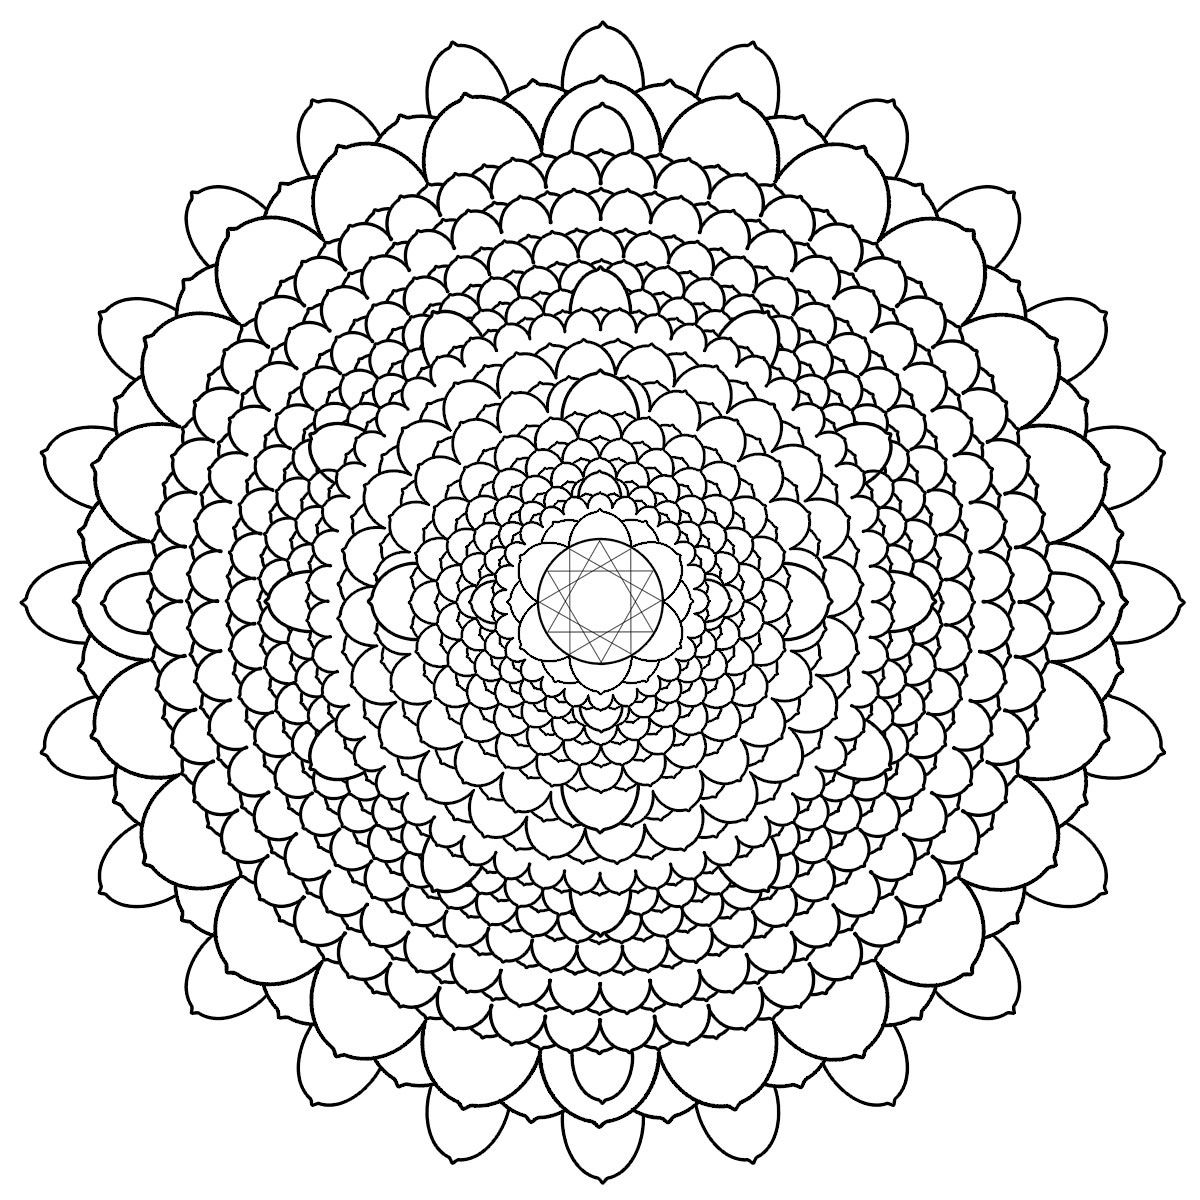 Adult coloring pages free printables mandala - Free Printable Mandalas For Adults Difficult Mandala Coloring Pages